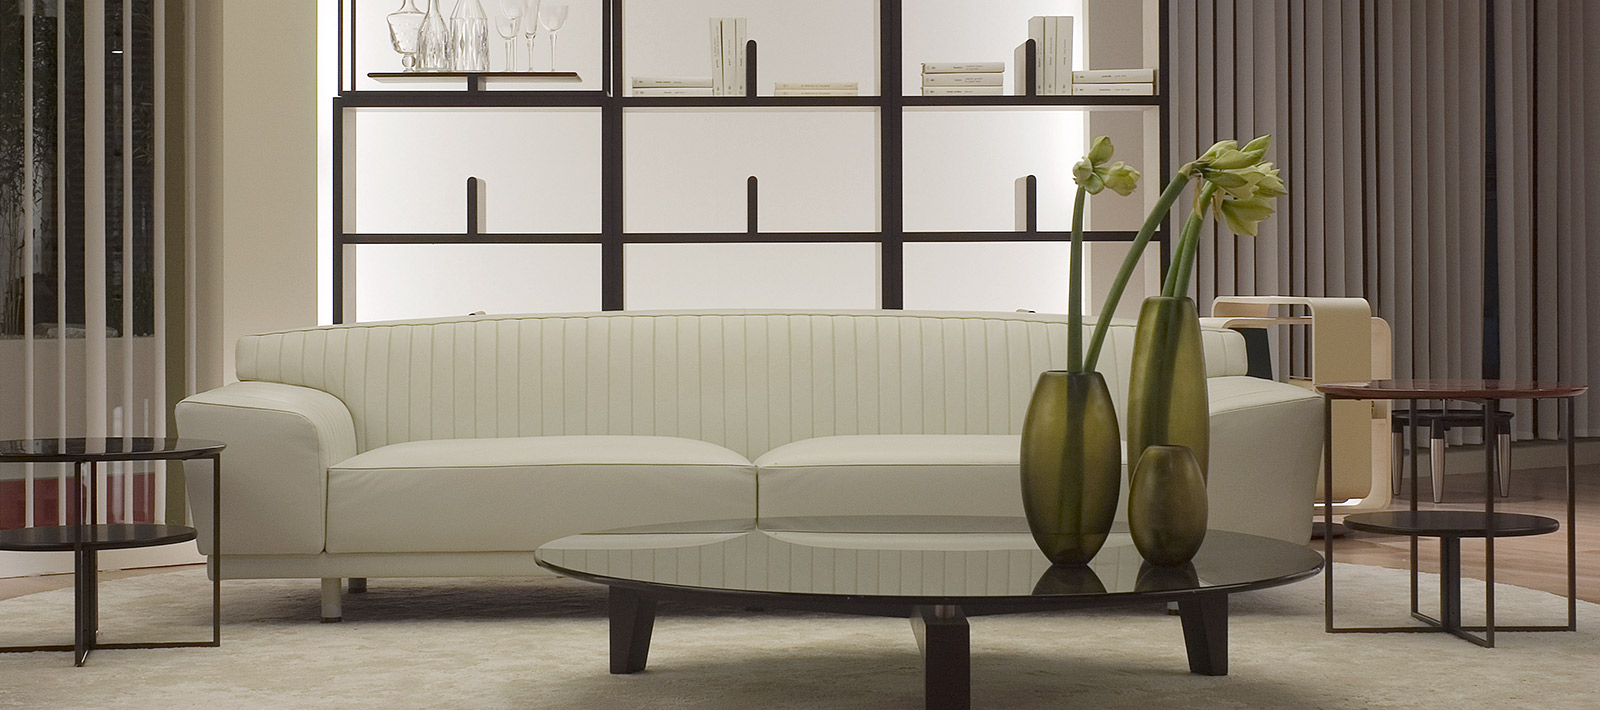 Giorgetti mobilier contemporain montreux vaud for Meubles fribourg